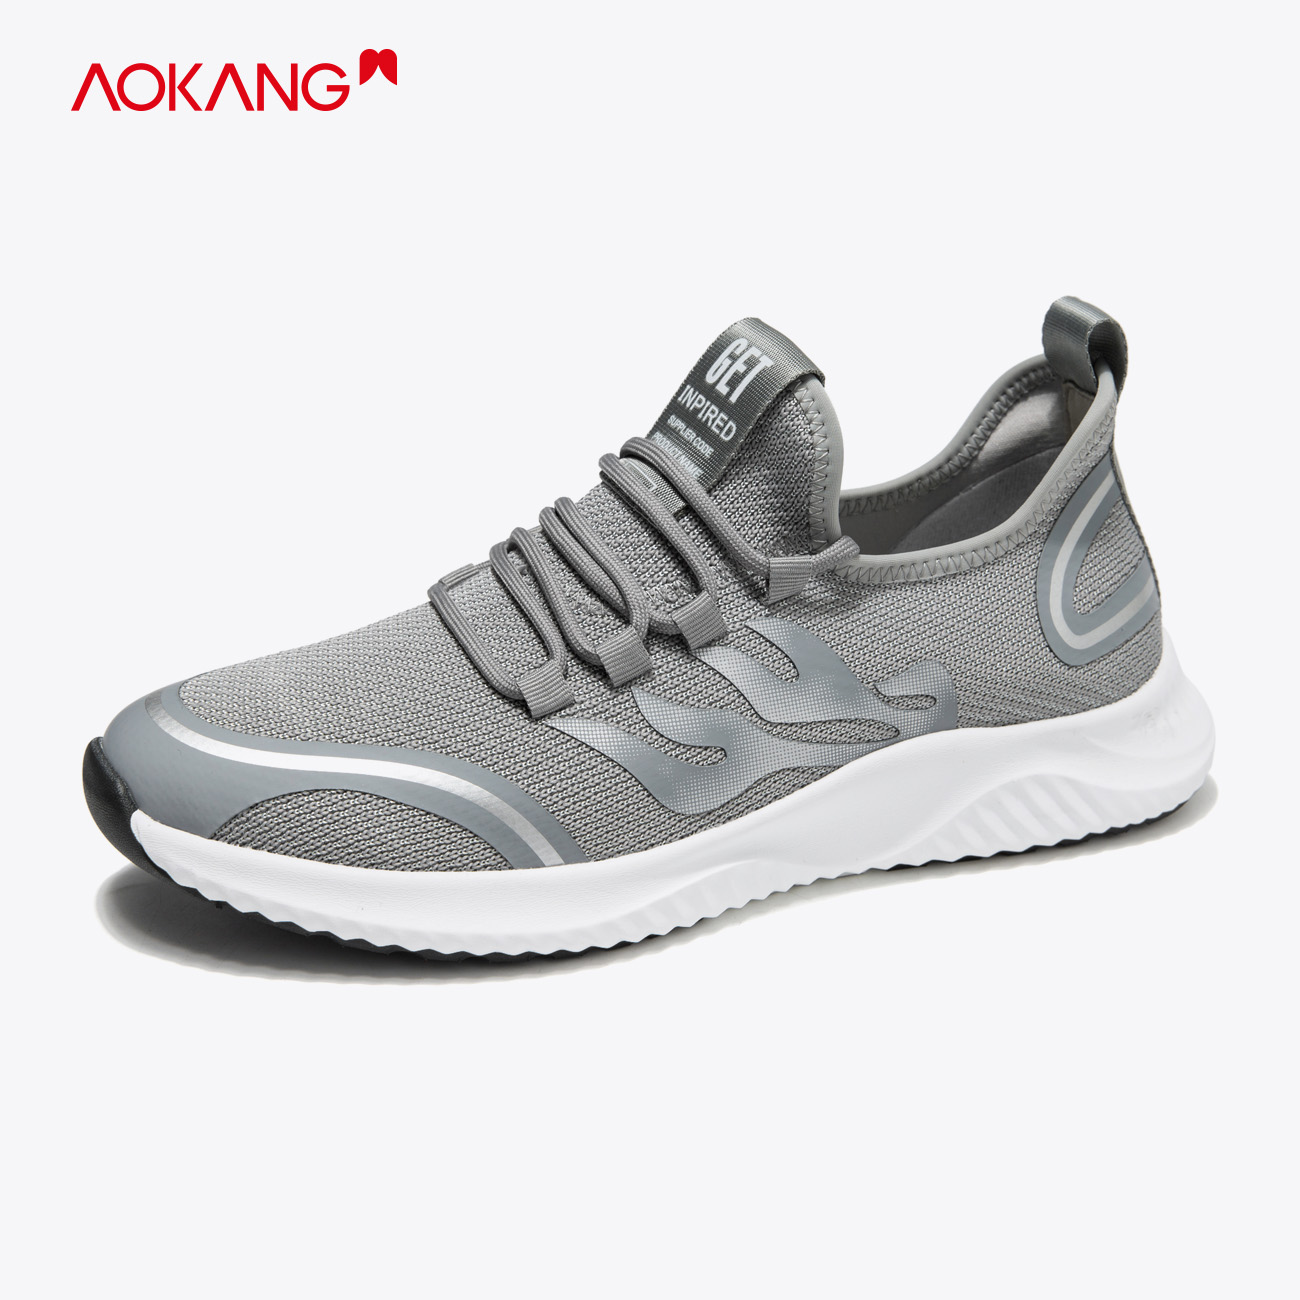 Aokang mens shoes spring and summer 2020 new flying sports shoes comfortable and breathable running shoes low top printing casual shoes